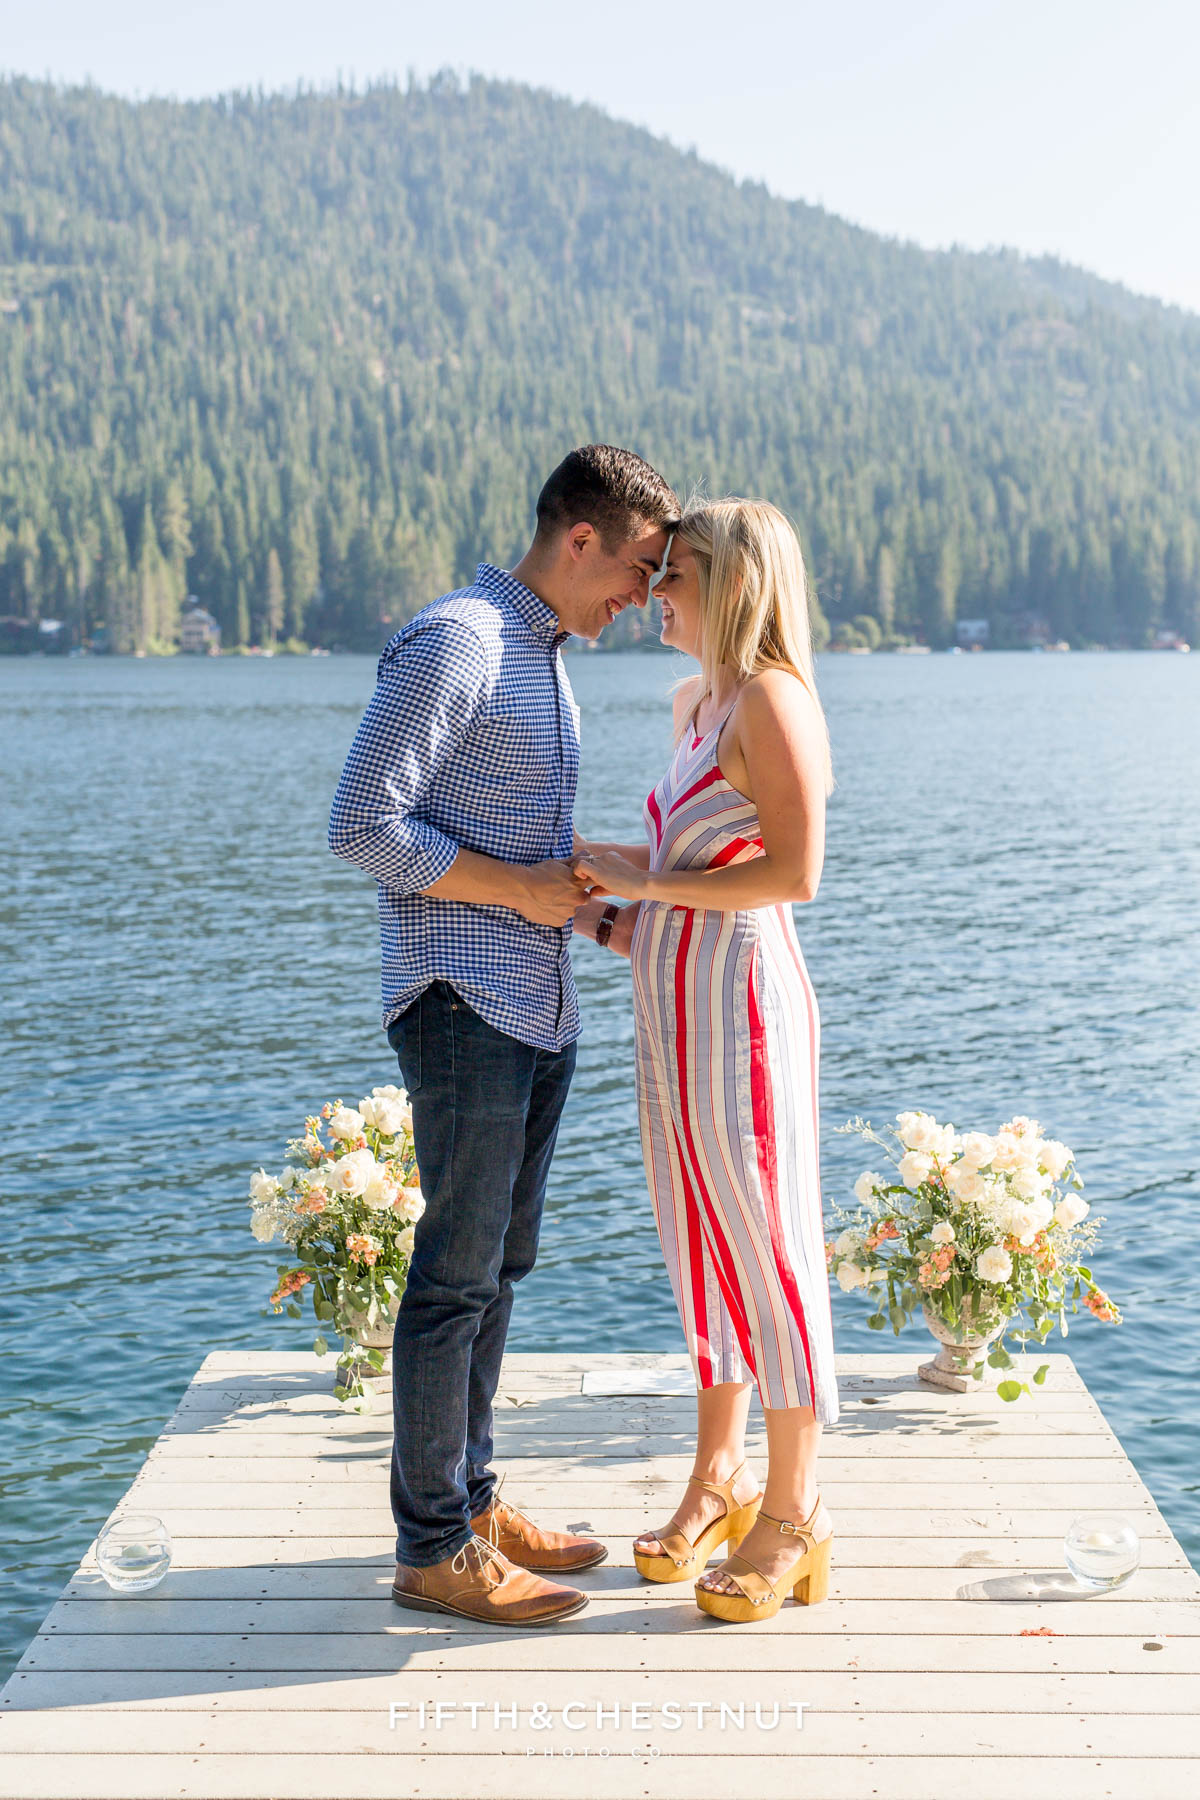 Bride and groom to be rest foreheads together after a Donner Lake Proposal